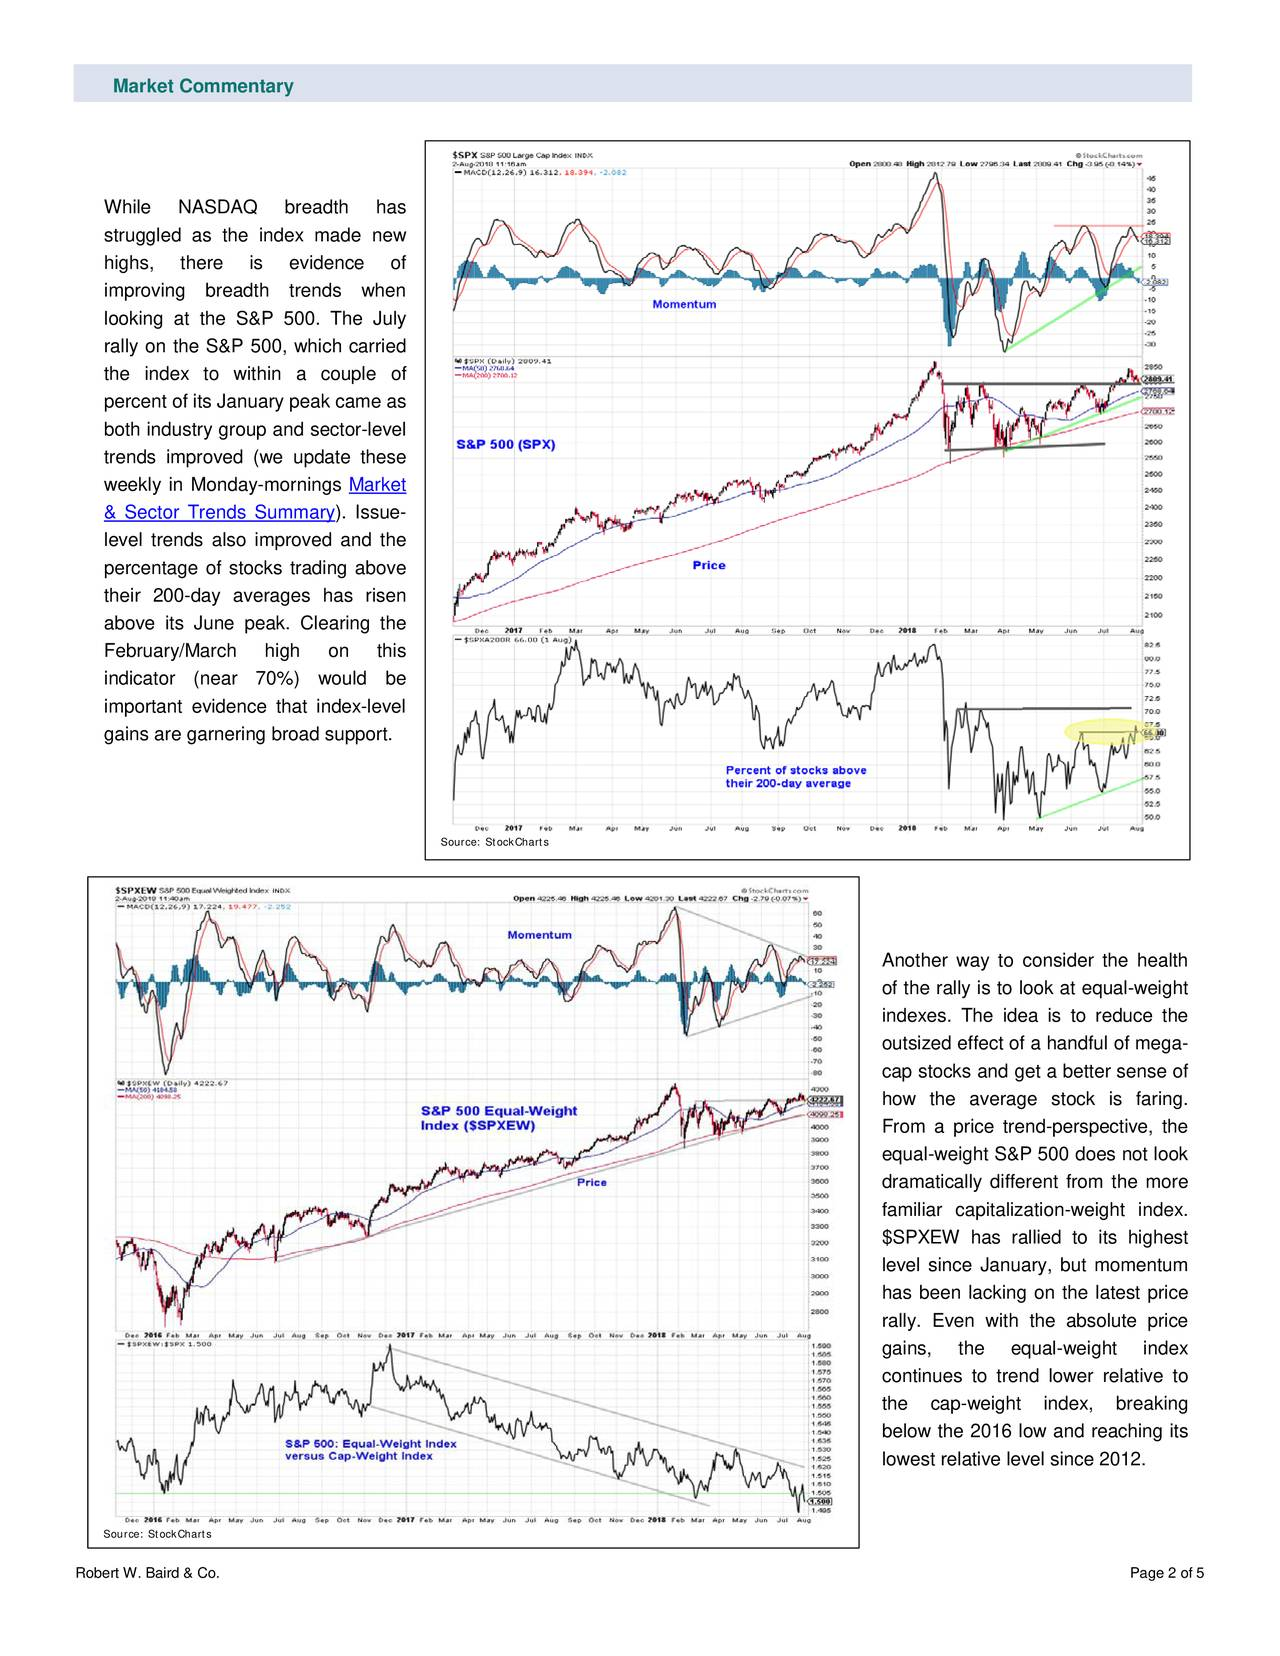 While NASDAQ breadth has struggled as the index made new highs, there is evidence of improving breadth trends when looking at the S&P 500. The July rally on the S&P 500, which carried the index to within a couple of percent of its January peak came as both industry group and sector -level trends improved (we update these weekly in Monday -mornings Market & Sector Trends Summary ). Issue- level trends also improved and the percentage of stocks trading above their 200-day averages has risen above its June peak. Clearing the February/March high on this indicator (near 70%) would be important evidence that index -level gains are garnering broad support. Source: StockCharts Another way to consider the health of the rally is to look at equal -weight indexes. The idea is to reduce the outsized effect of a handful of mega- cap stocks and get a better sense of how the average stock is faring. From a price trend- perspective, the equal-weight S&P 500 does not look dramatically different from the more familiar capitalization-weight index. $SPXEW has rallied to its highest level since January, but momentum has been lacking on the latest price rally. Even with the absolute price gains, t he equal -weight index continues to trend lower relative to the cap-weight index, breaking below the 2016 low and reaching its lowest relative level since 2012. Source: StockCharts Robert W. Baird & Co. Page 2 of 5